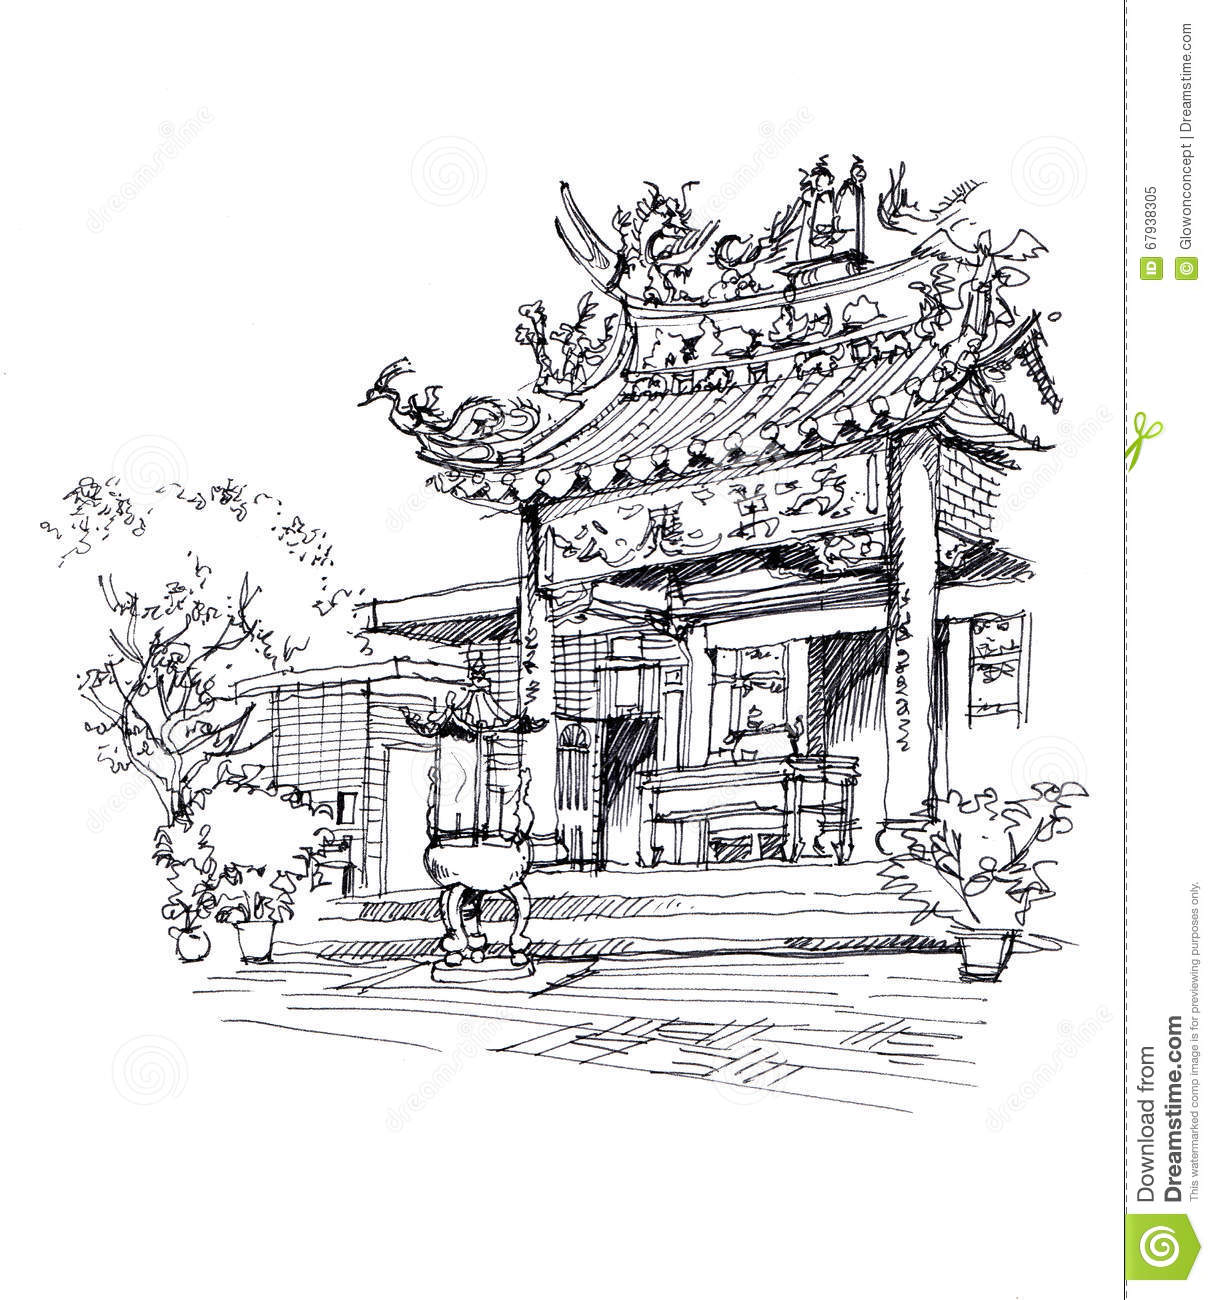 Chinese temple pen drawing sketch illustration